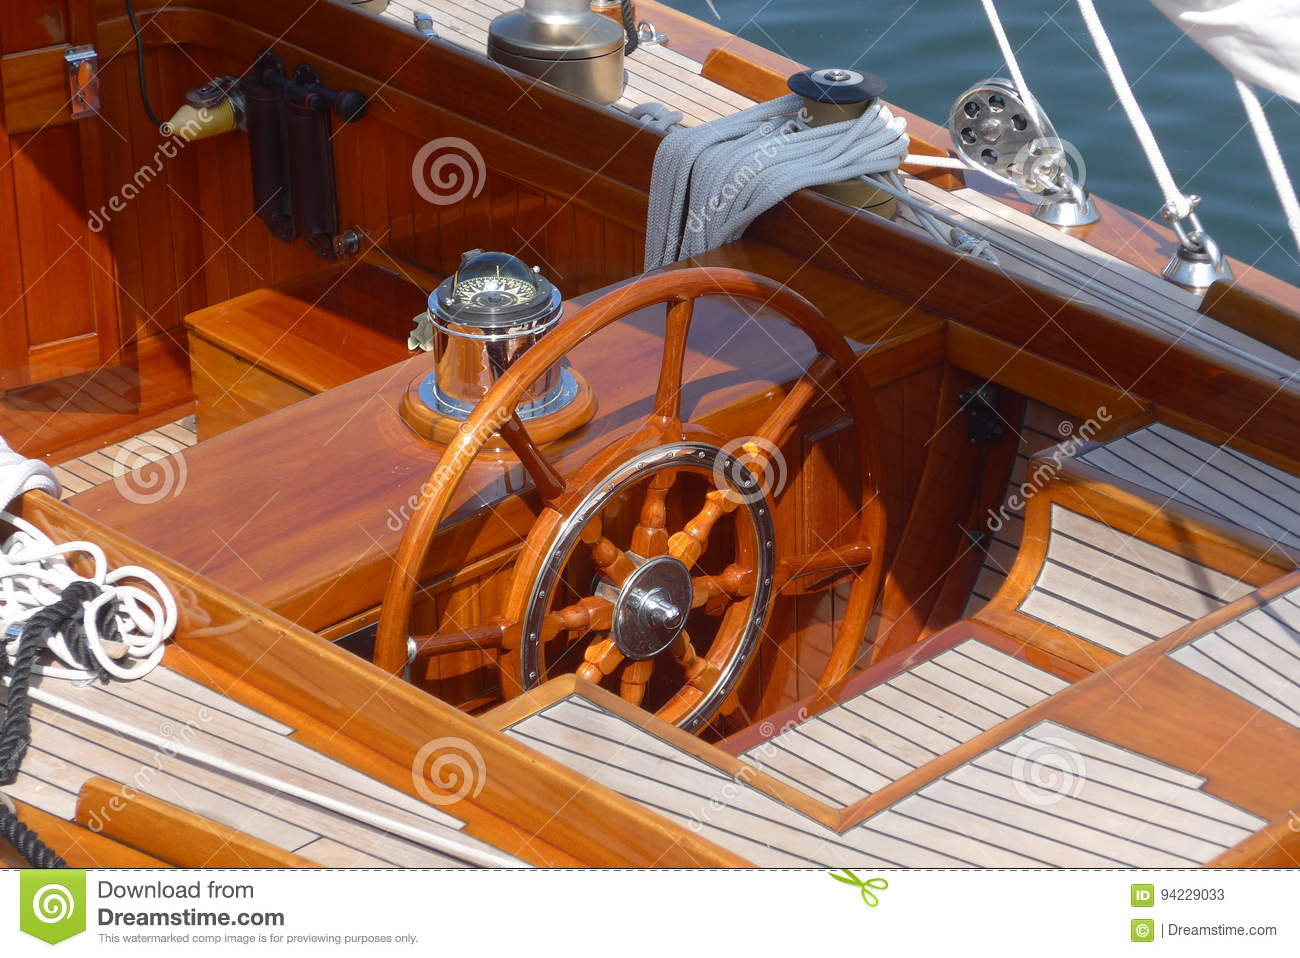 Detail photos of a sailing yacht